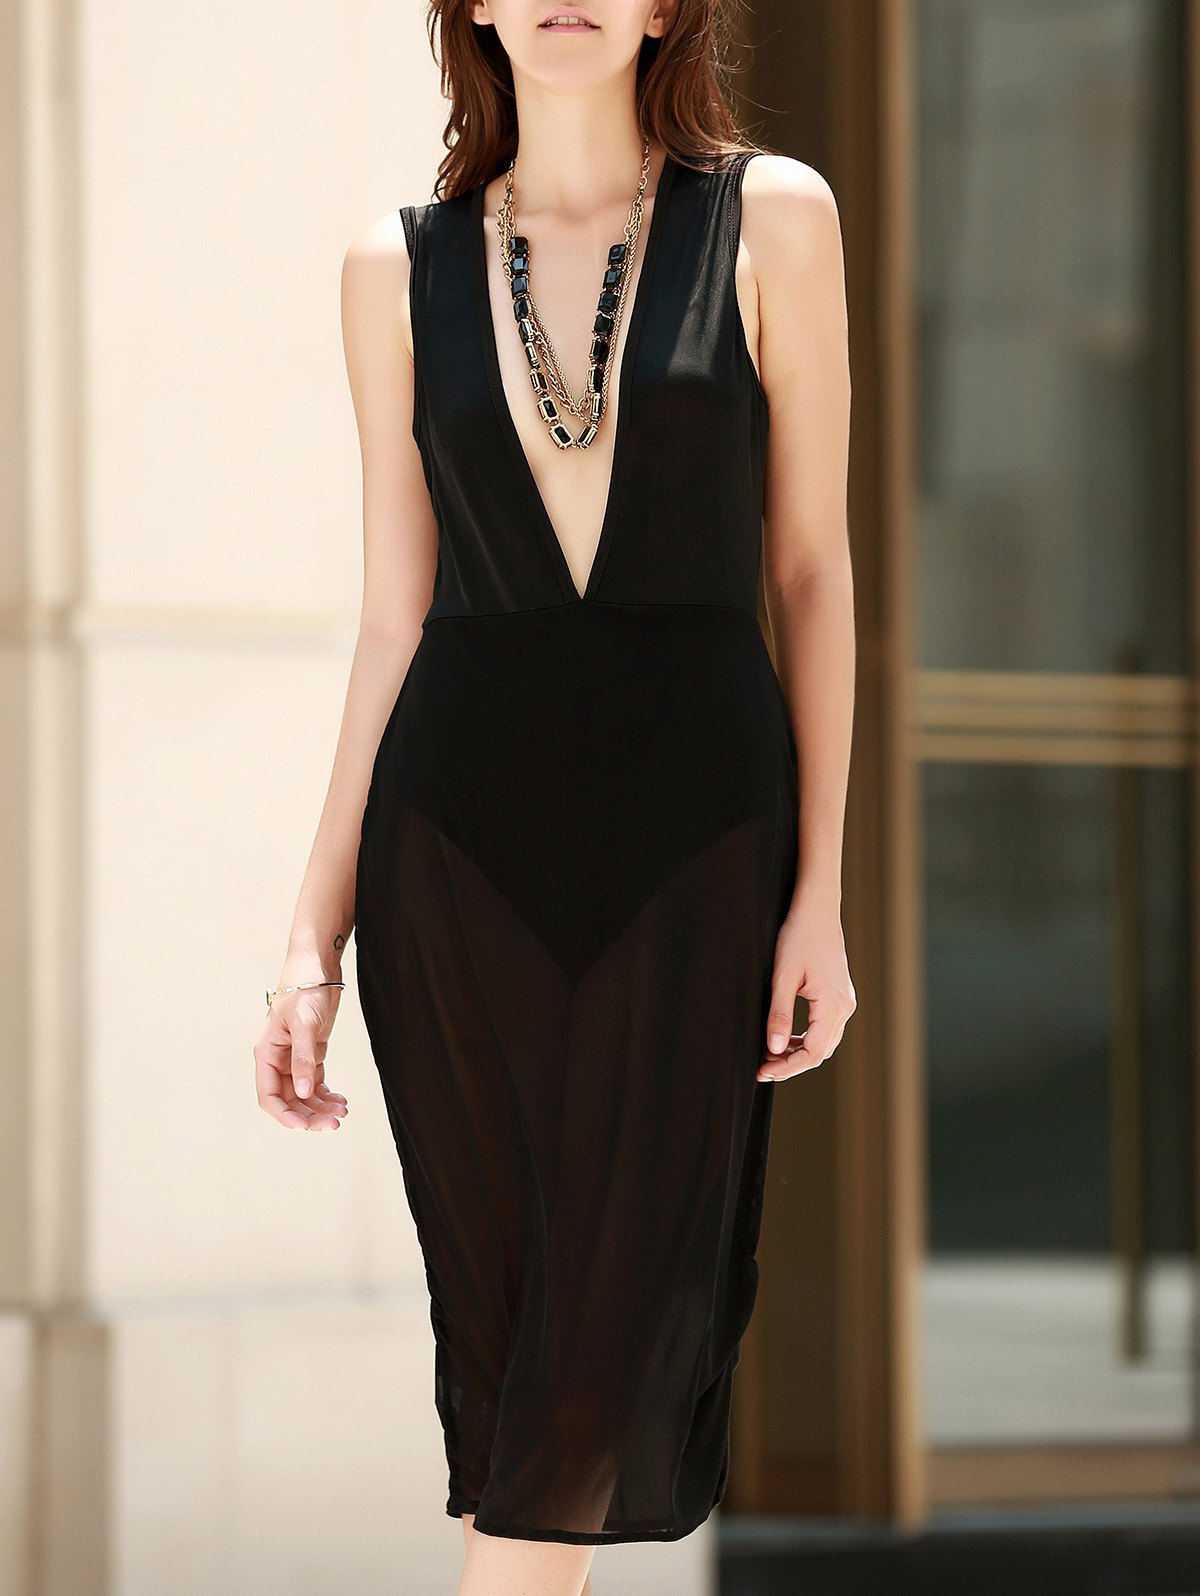 Alluring Womens See-Through Plunging Neck Sleeveless DressWomen<br><br><br>Size: L<br>Color: BLACK